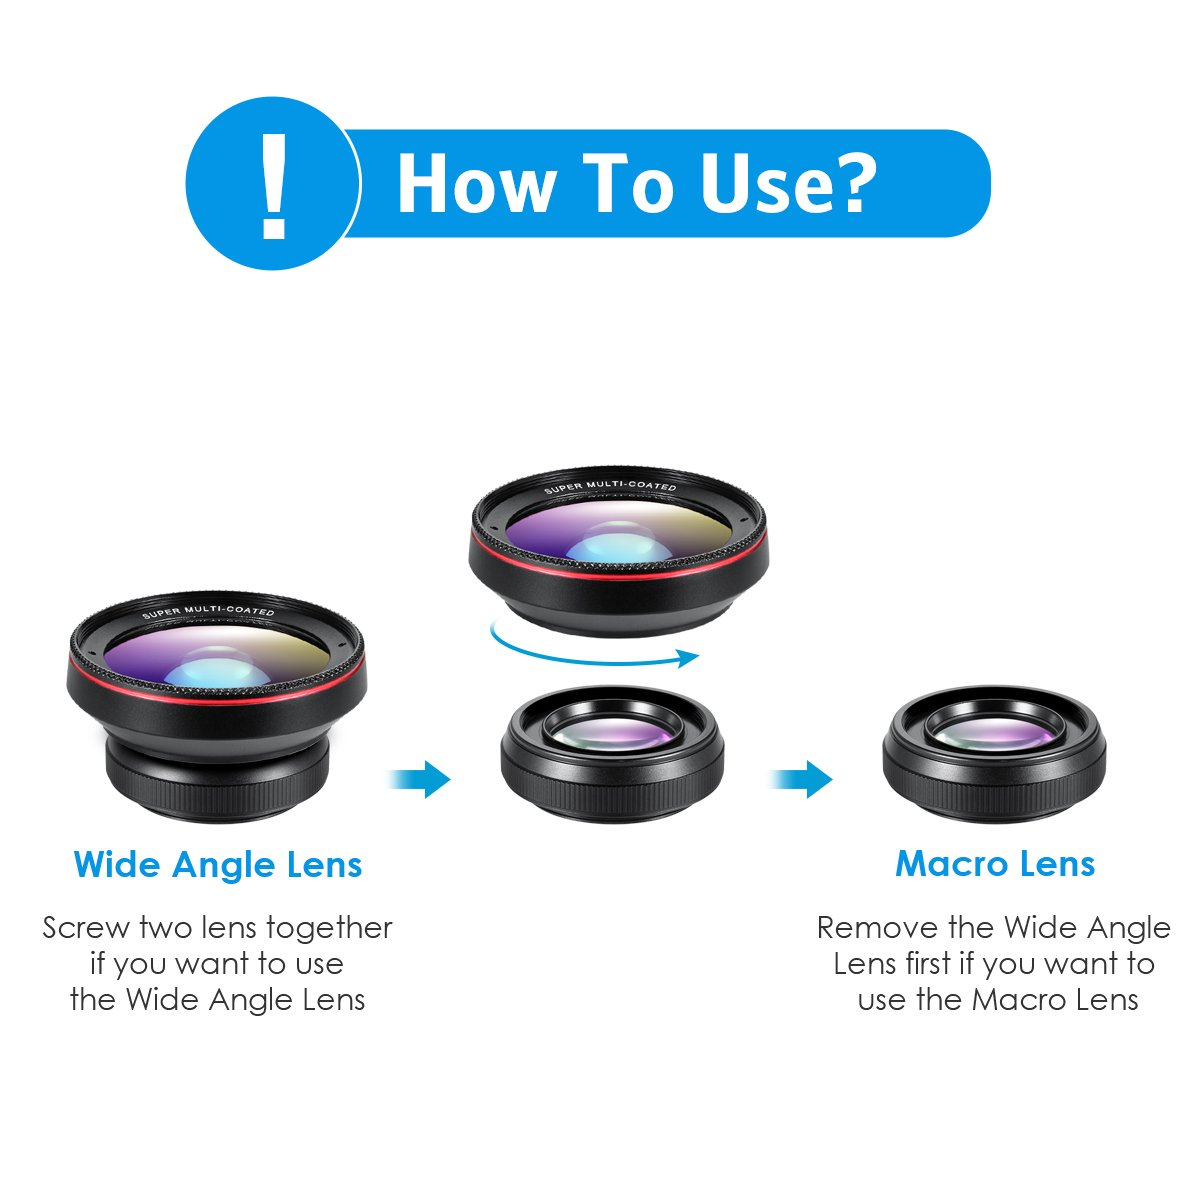 Phone Camera Lens, 0 6X Super Wide Angle Lens, 15X Macro Lens for iPhone  Lens Kit, 2 in 1 Clip-On Cell Phone Camera Lens for iPhone 8, X, 7, 7 Plus,